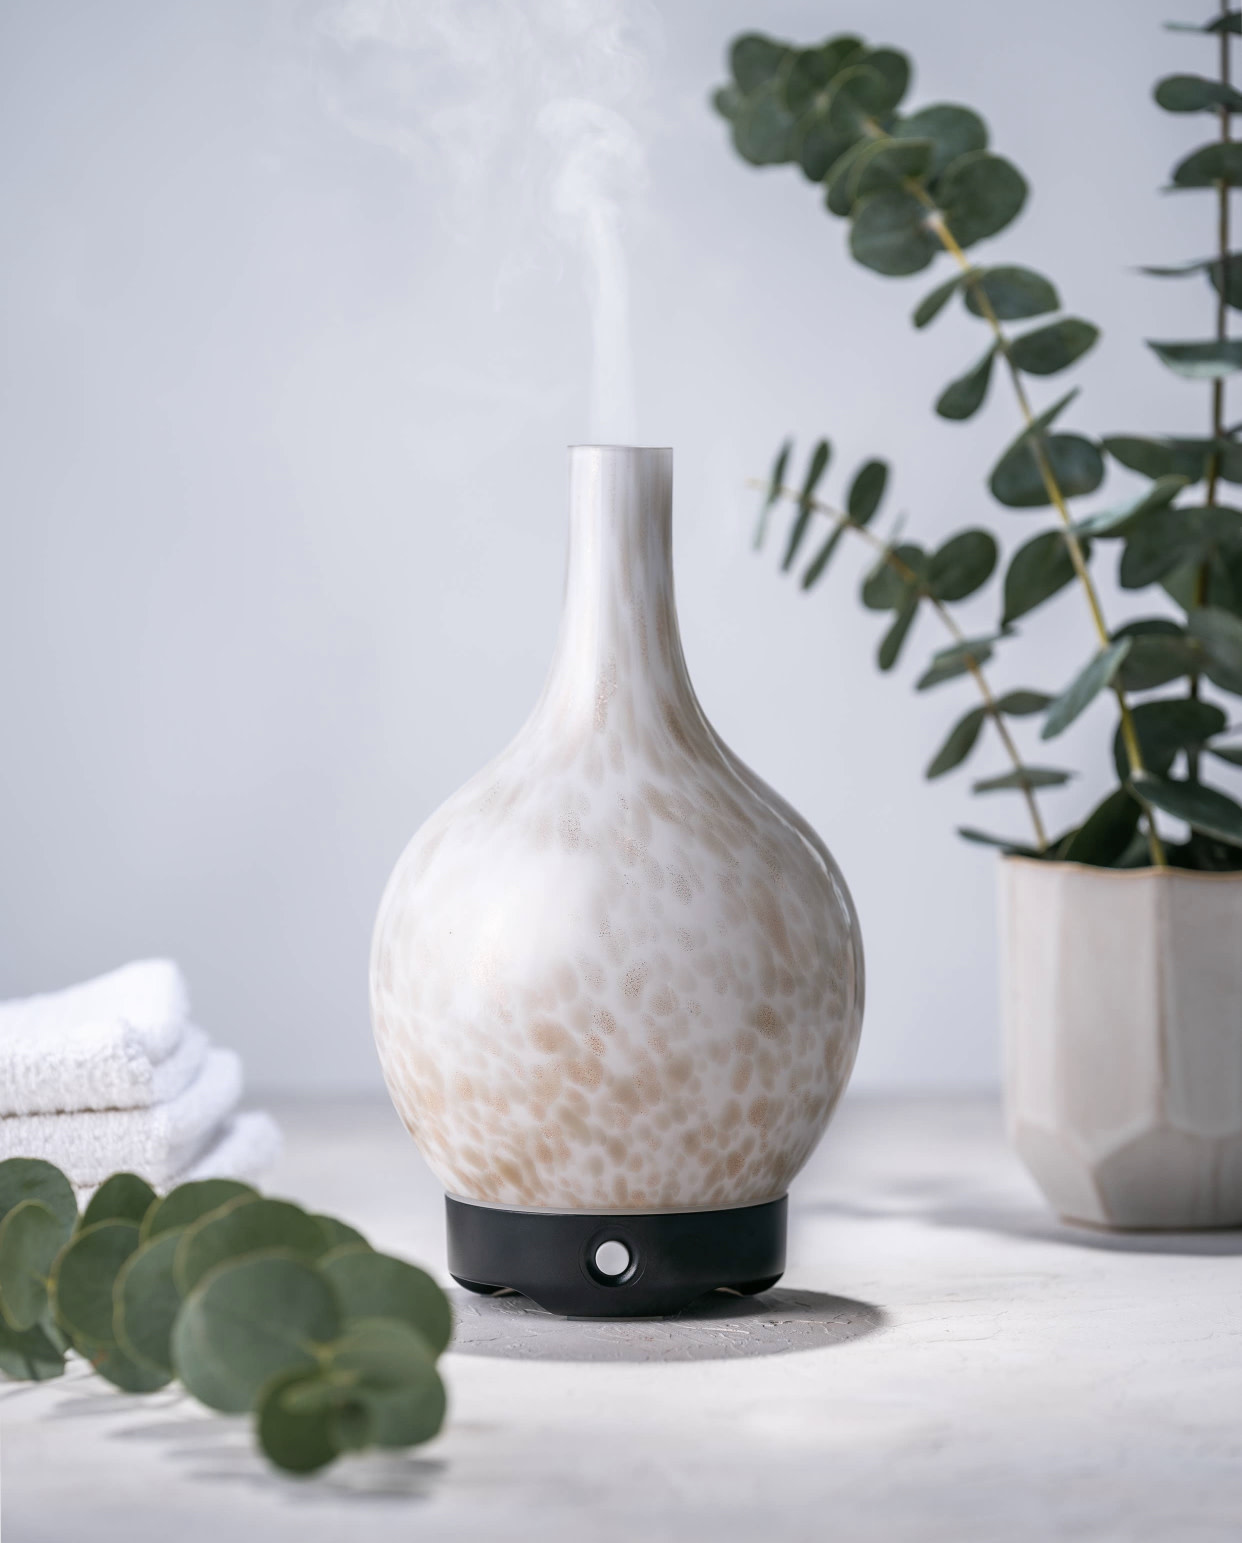 Woolzies White Glass Gold Speckled Diffuser